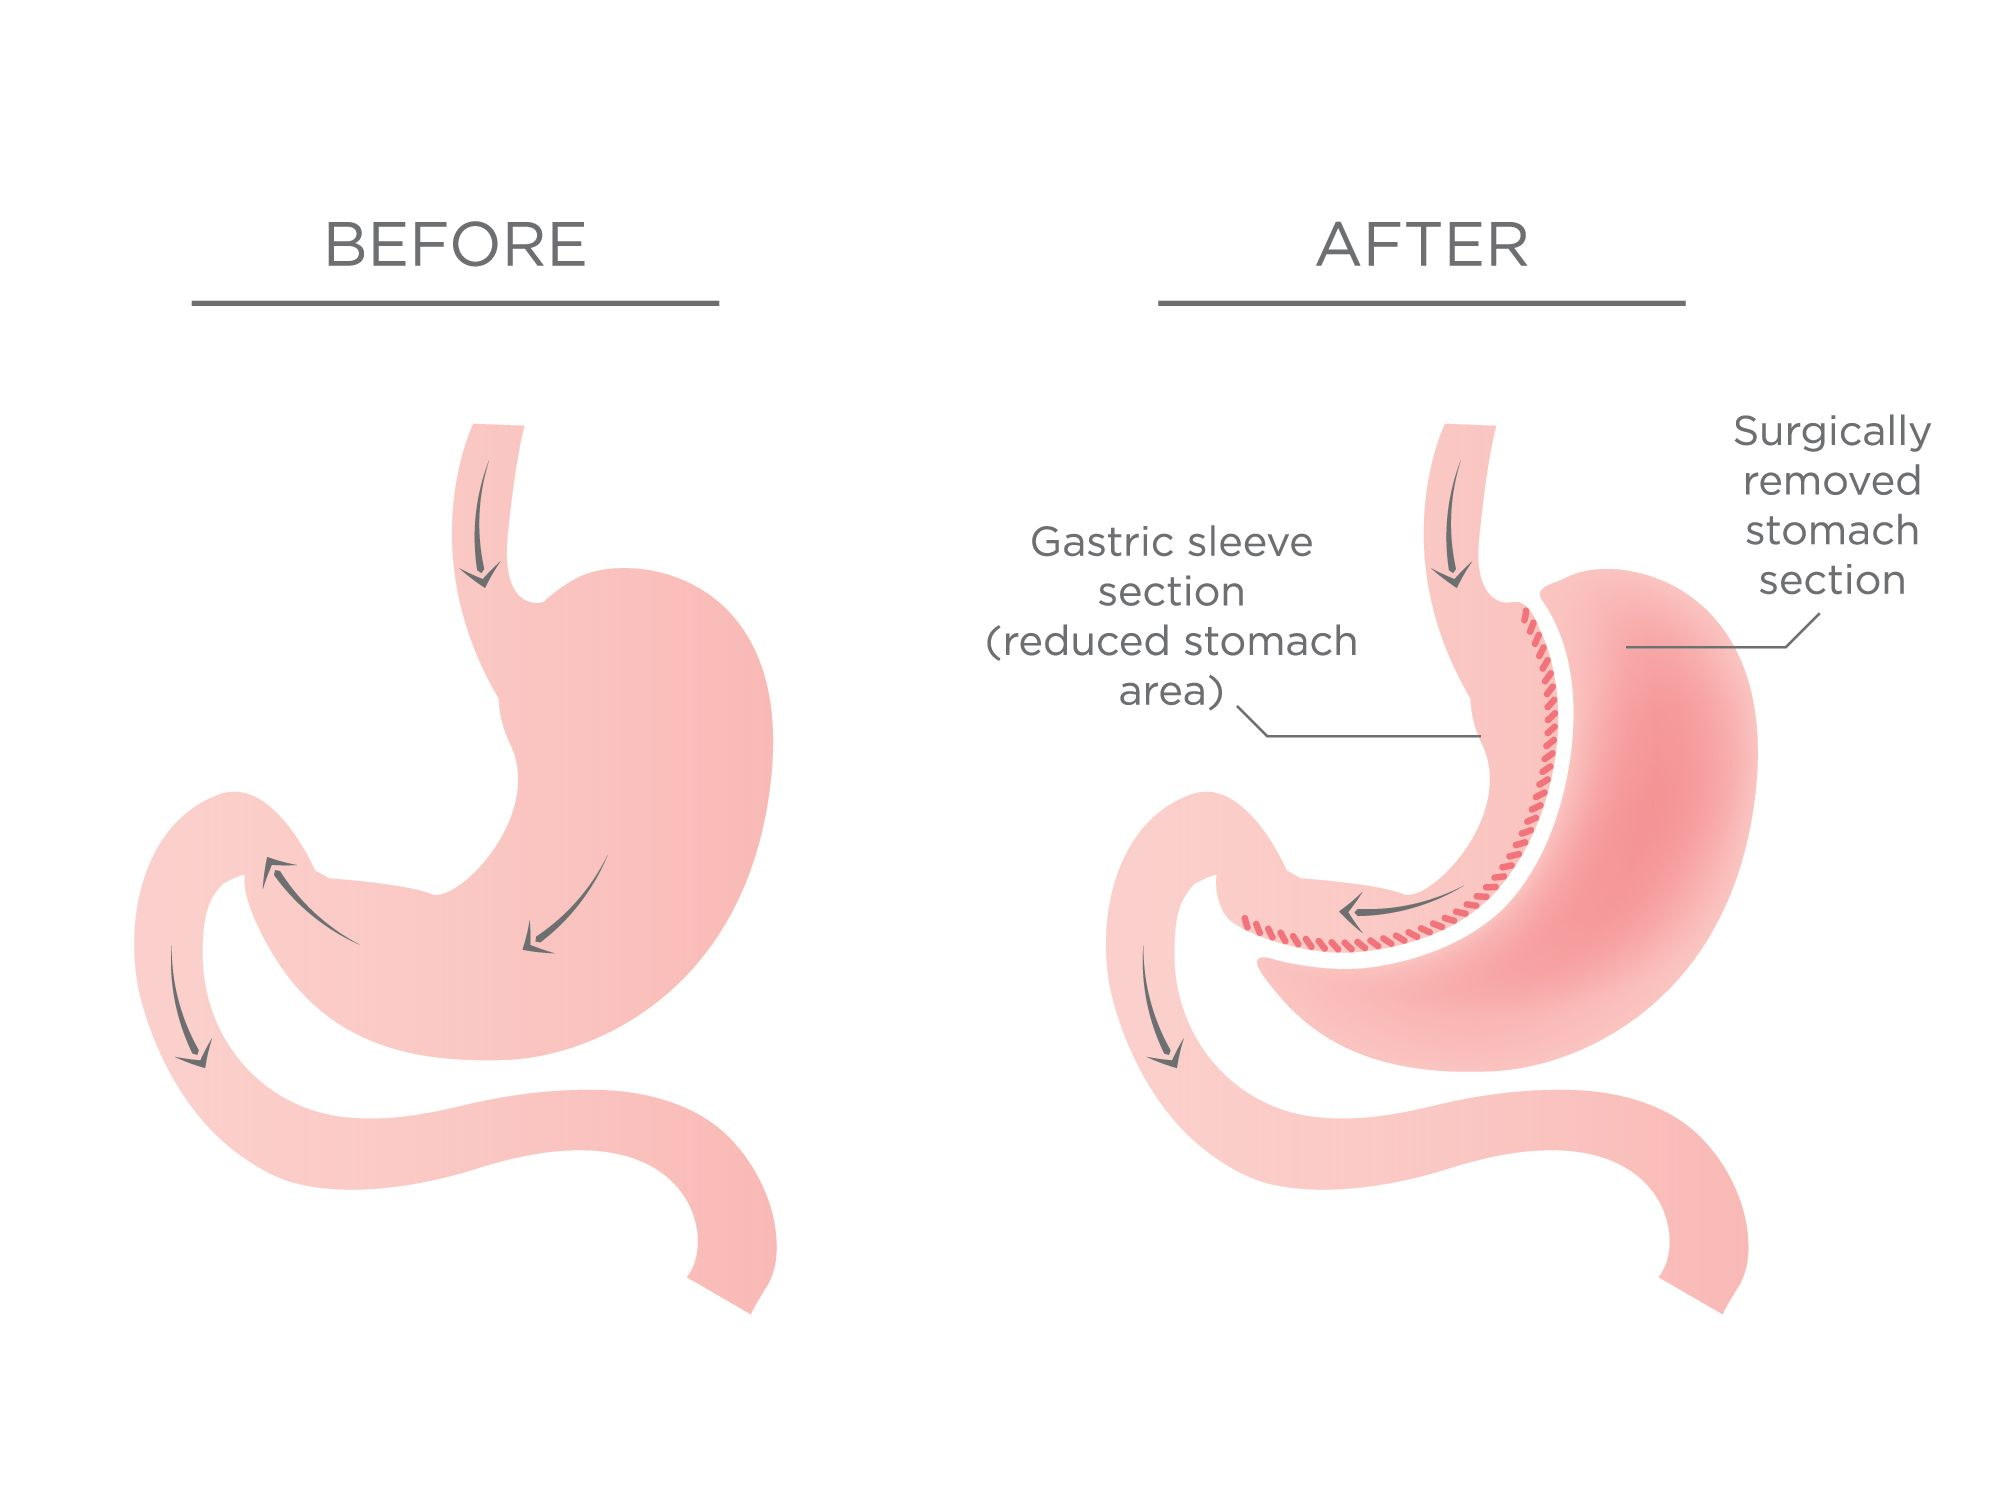 Before and after gastric sleeve surgery